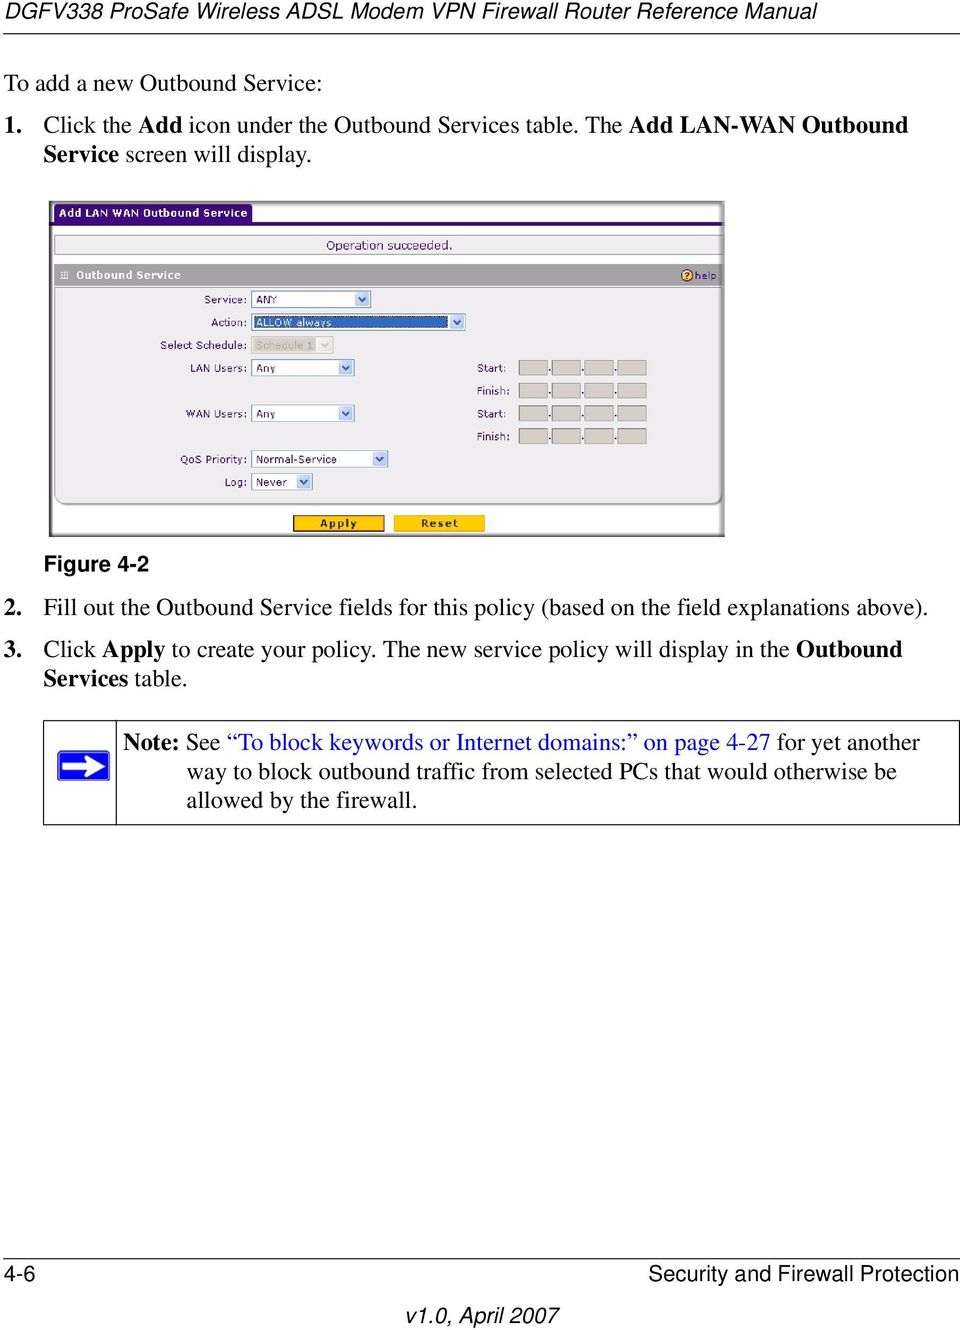 Click Apply to create your policy. The new service policy will display in the Outbound Services table.